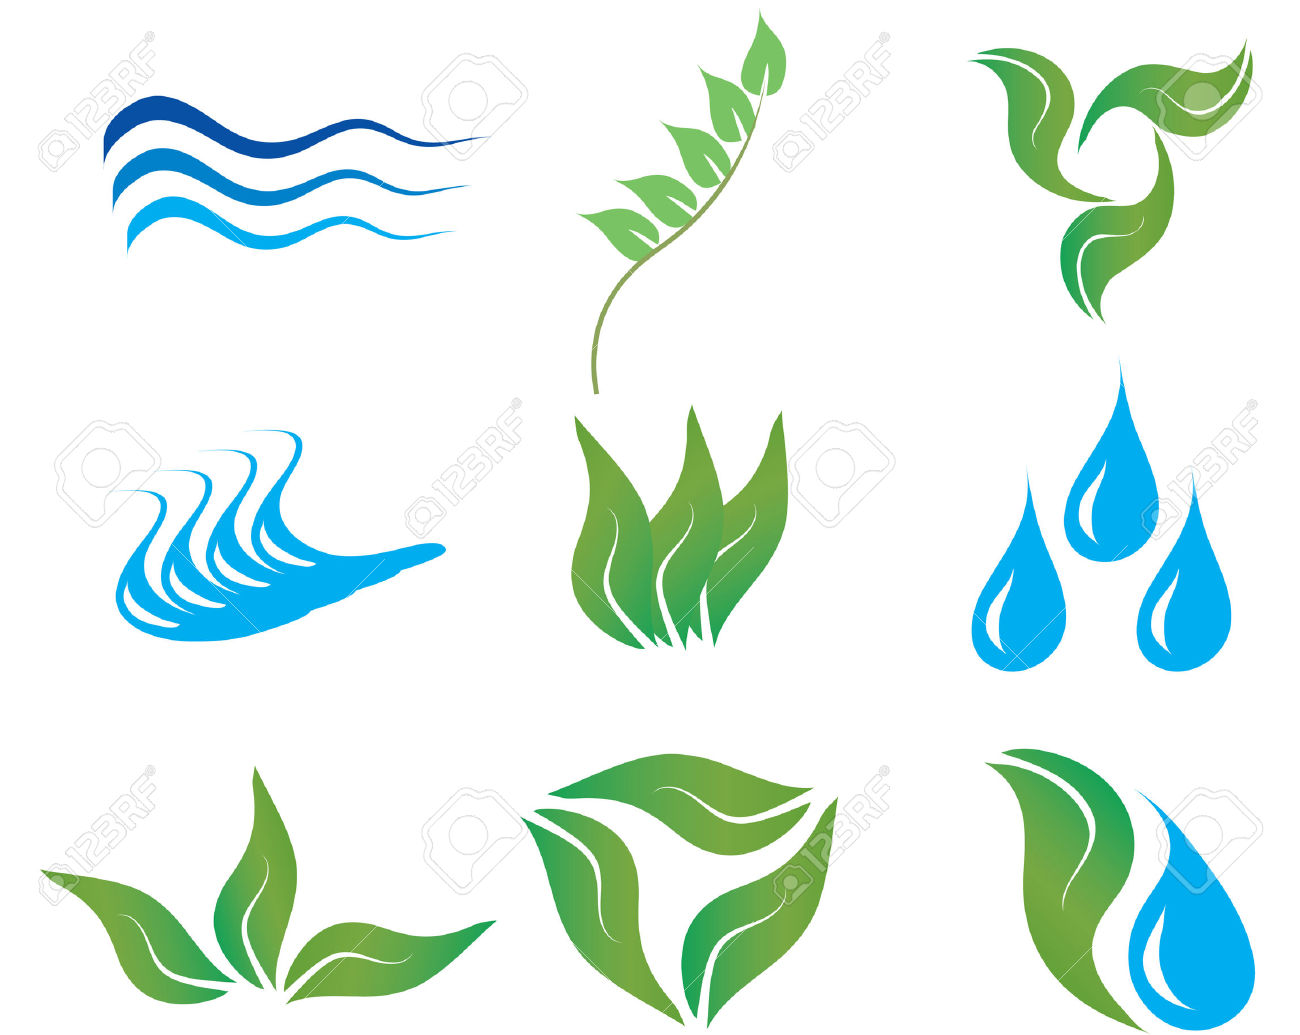 River logo clipart banner royalty free library Ecology And Botanic Icons For Design Use Royalty Free Cliparts ... banner royalty free library